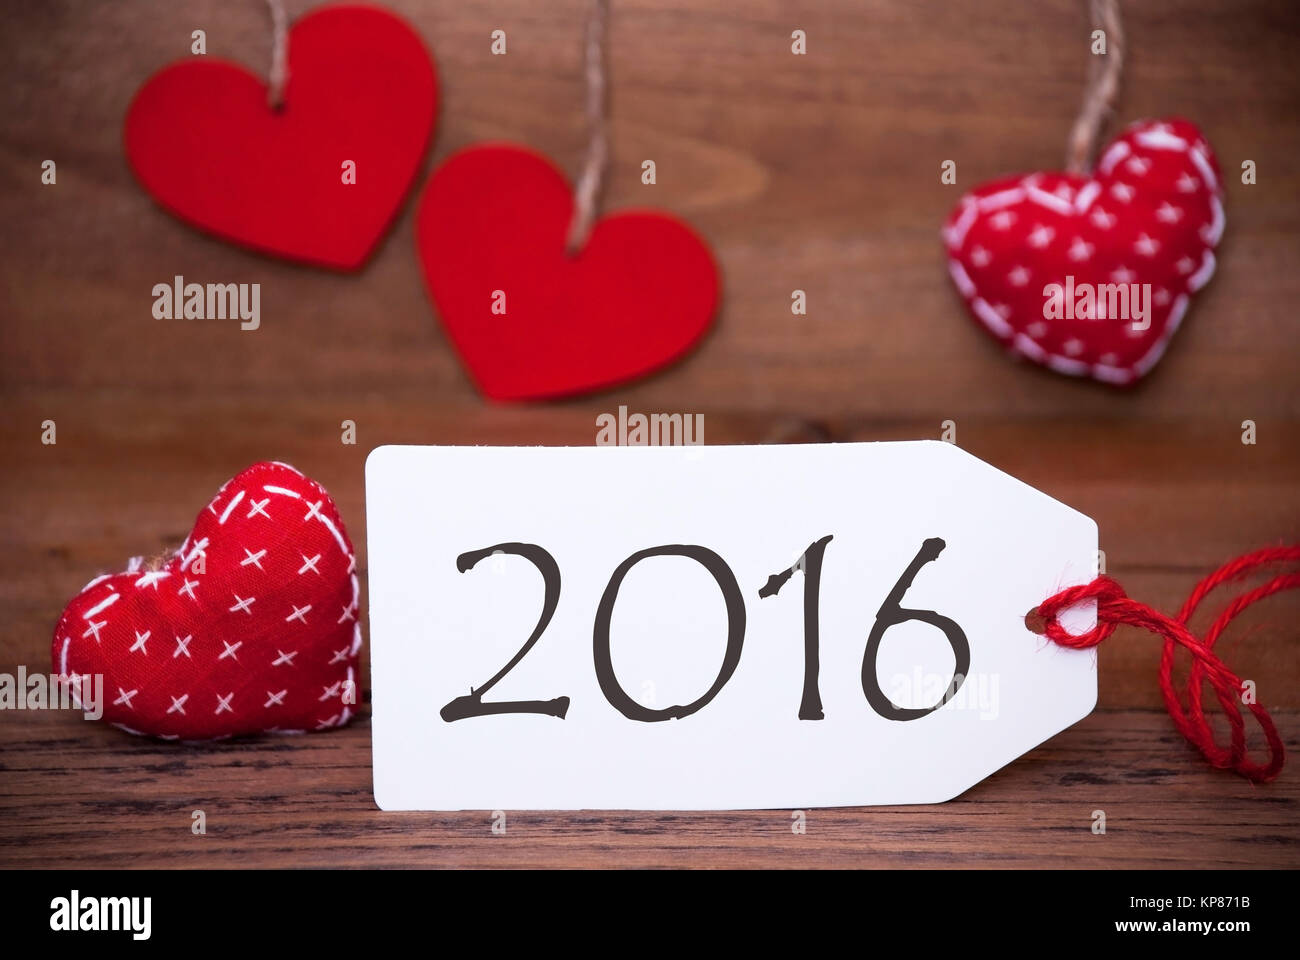 One White Label With Text 2016 For Happy New Year Greetings